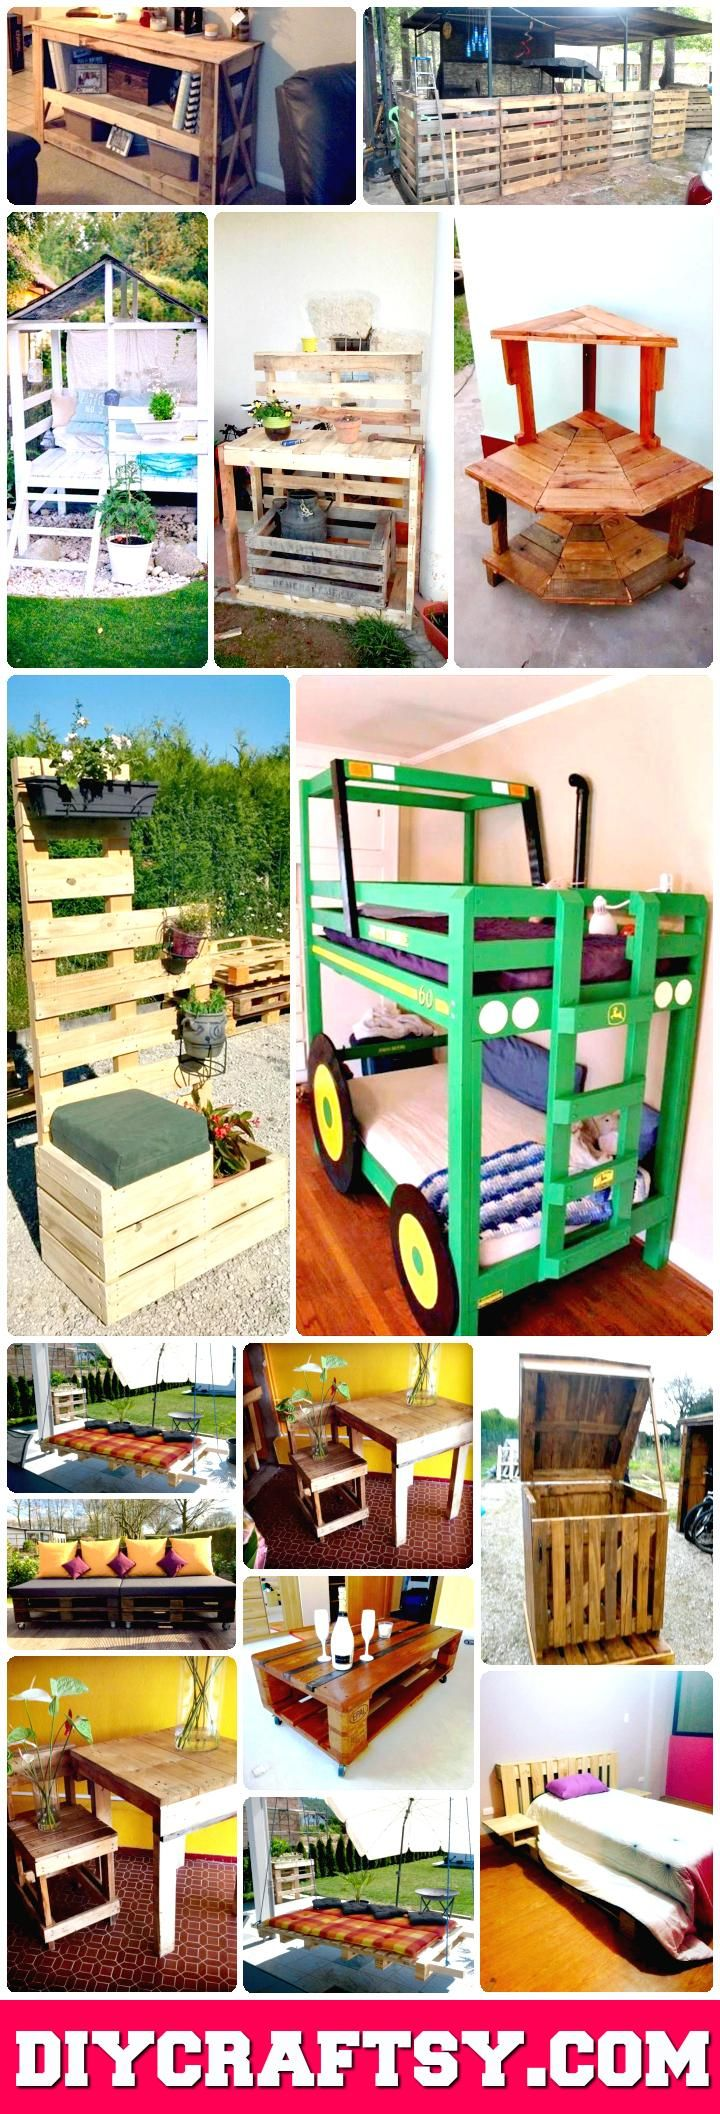 Top 30 Pallet Ideas to DIY Furniture for Your Home - DIY & Crafts